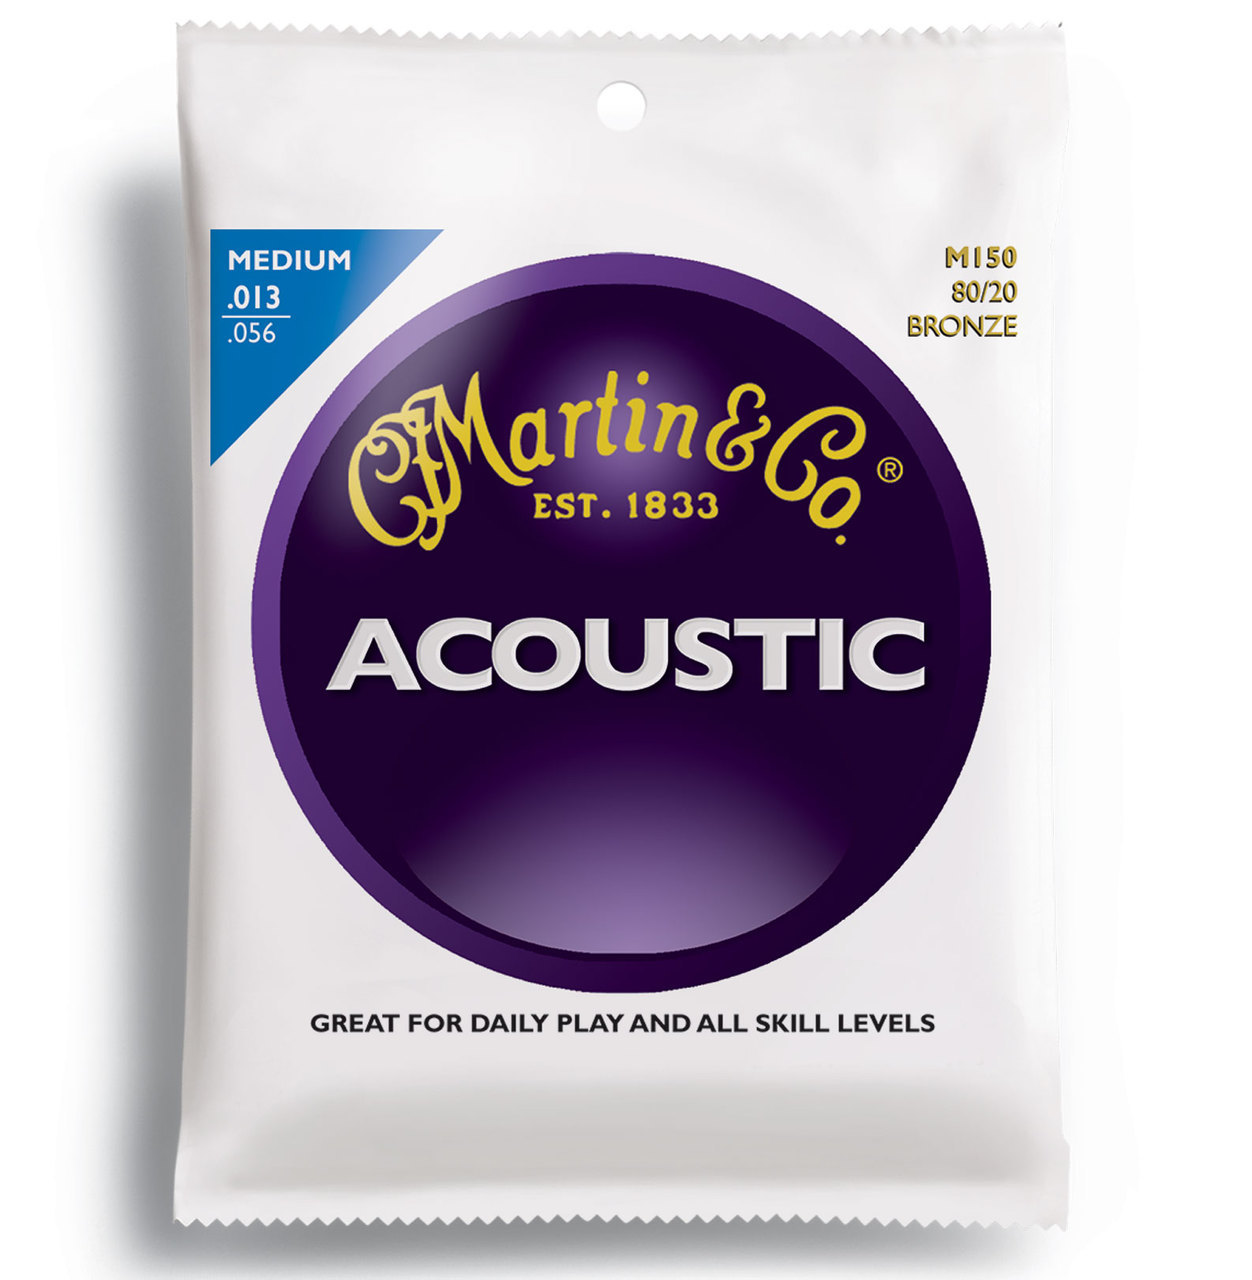 Martin Acoustic Strings Offer. Buy Two Get One Free.